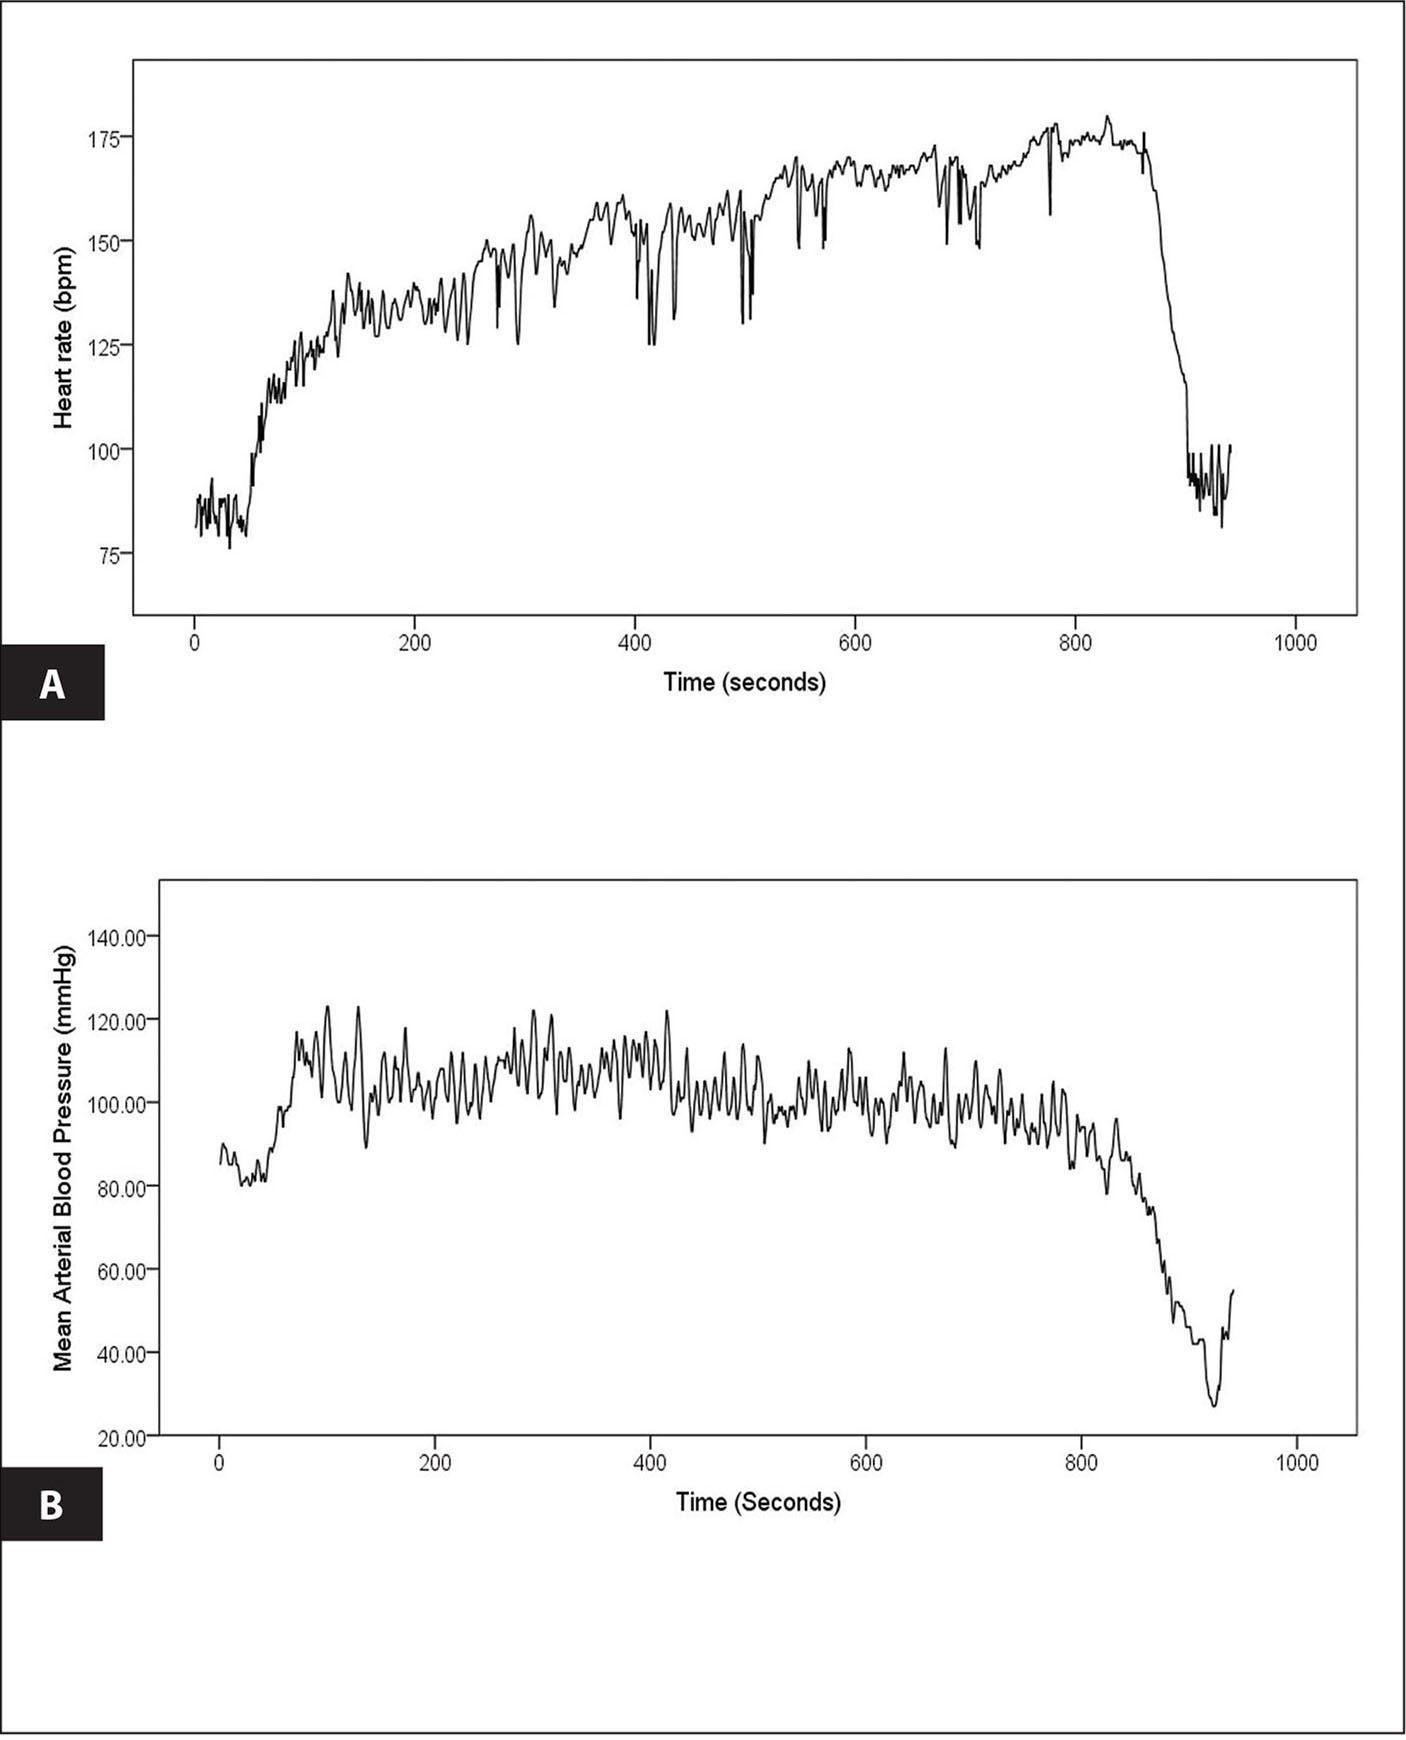 The figure demonstrates (A) a sustained elevation in heart rate without (B) hypotension for the first 10 minutes (600 seconds) of upright tilt. The blood pressure began to drop at about 800 seconds until neurally mediated (cardioinhibitory) syncope at about 900 seconds. The patient reported several orthostatic symptoms that progressed through the study.